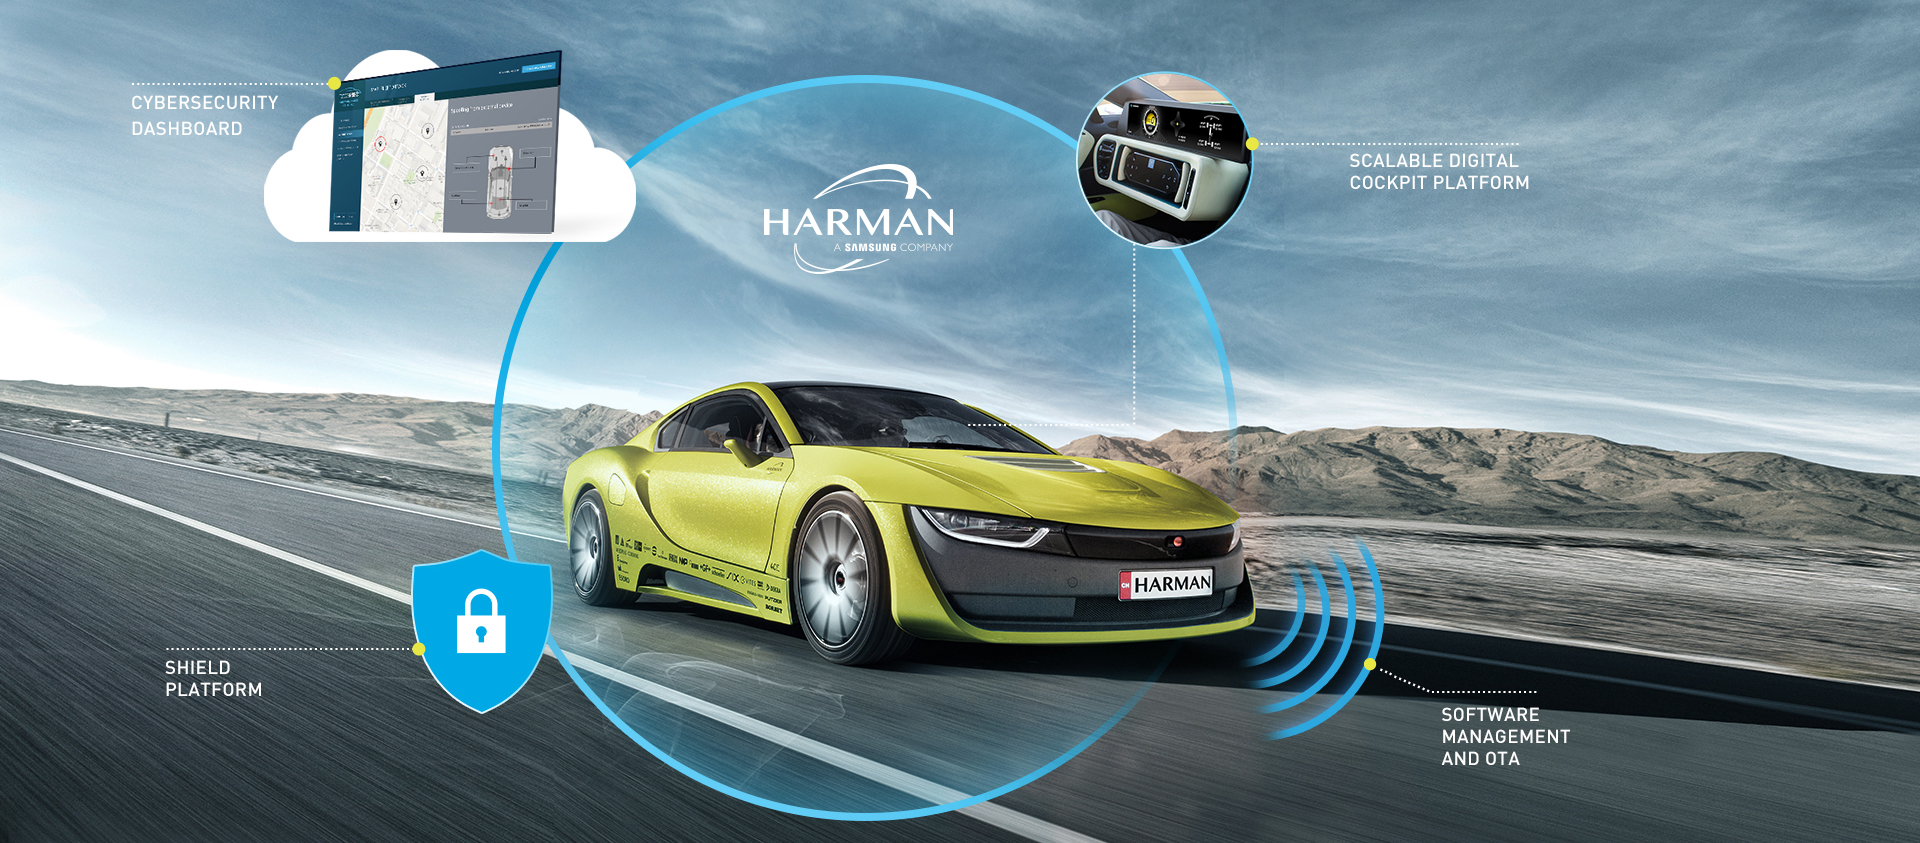 Harman_Cybersecurity End-to-End Solutions for Connected Car PPT version